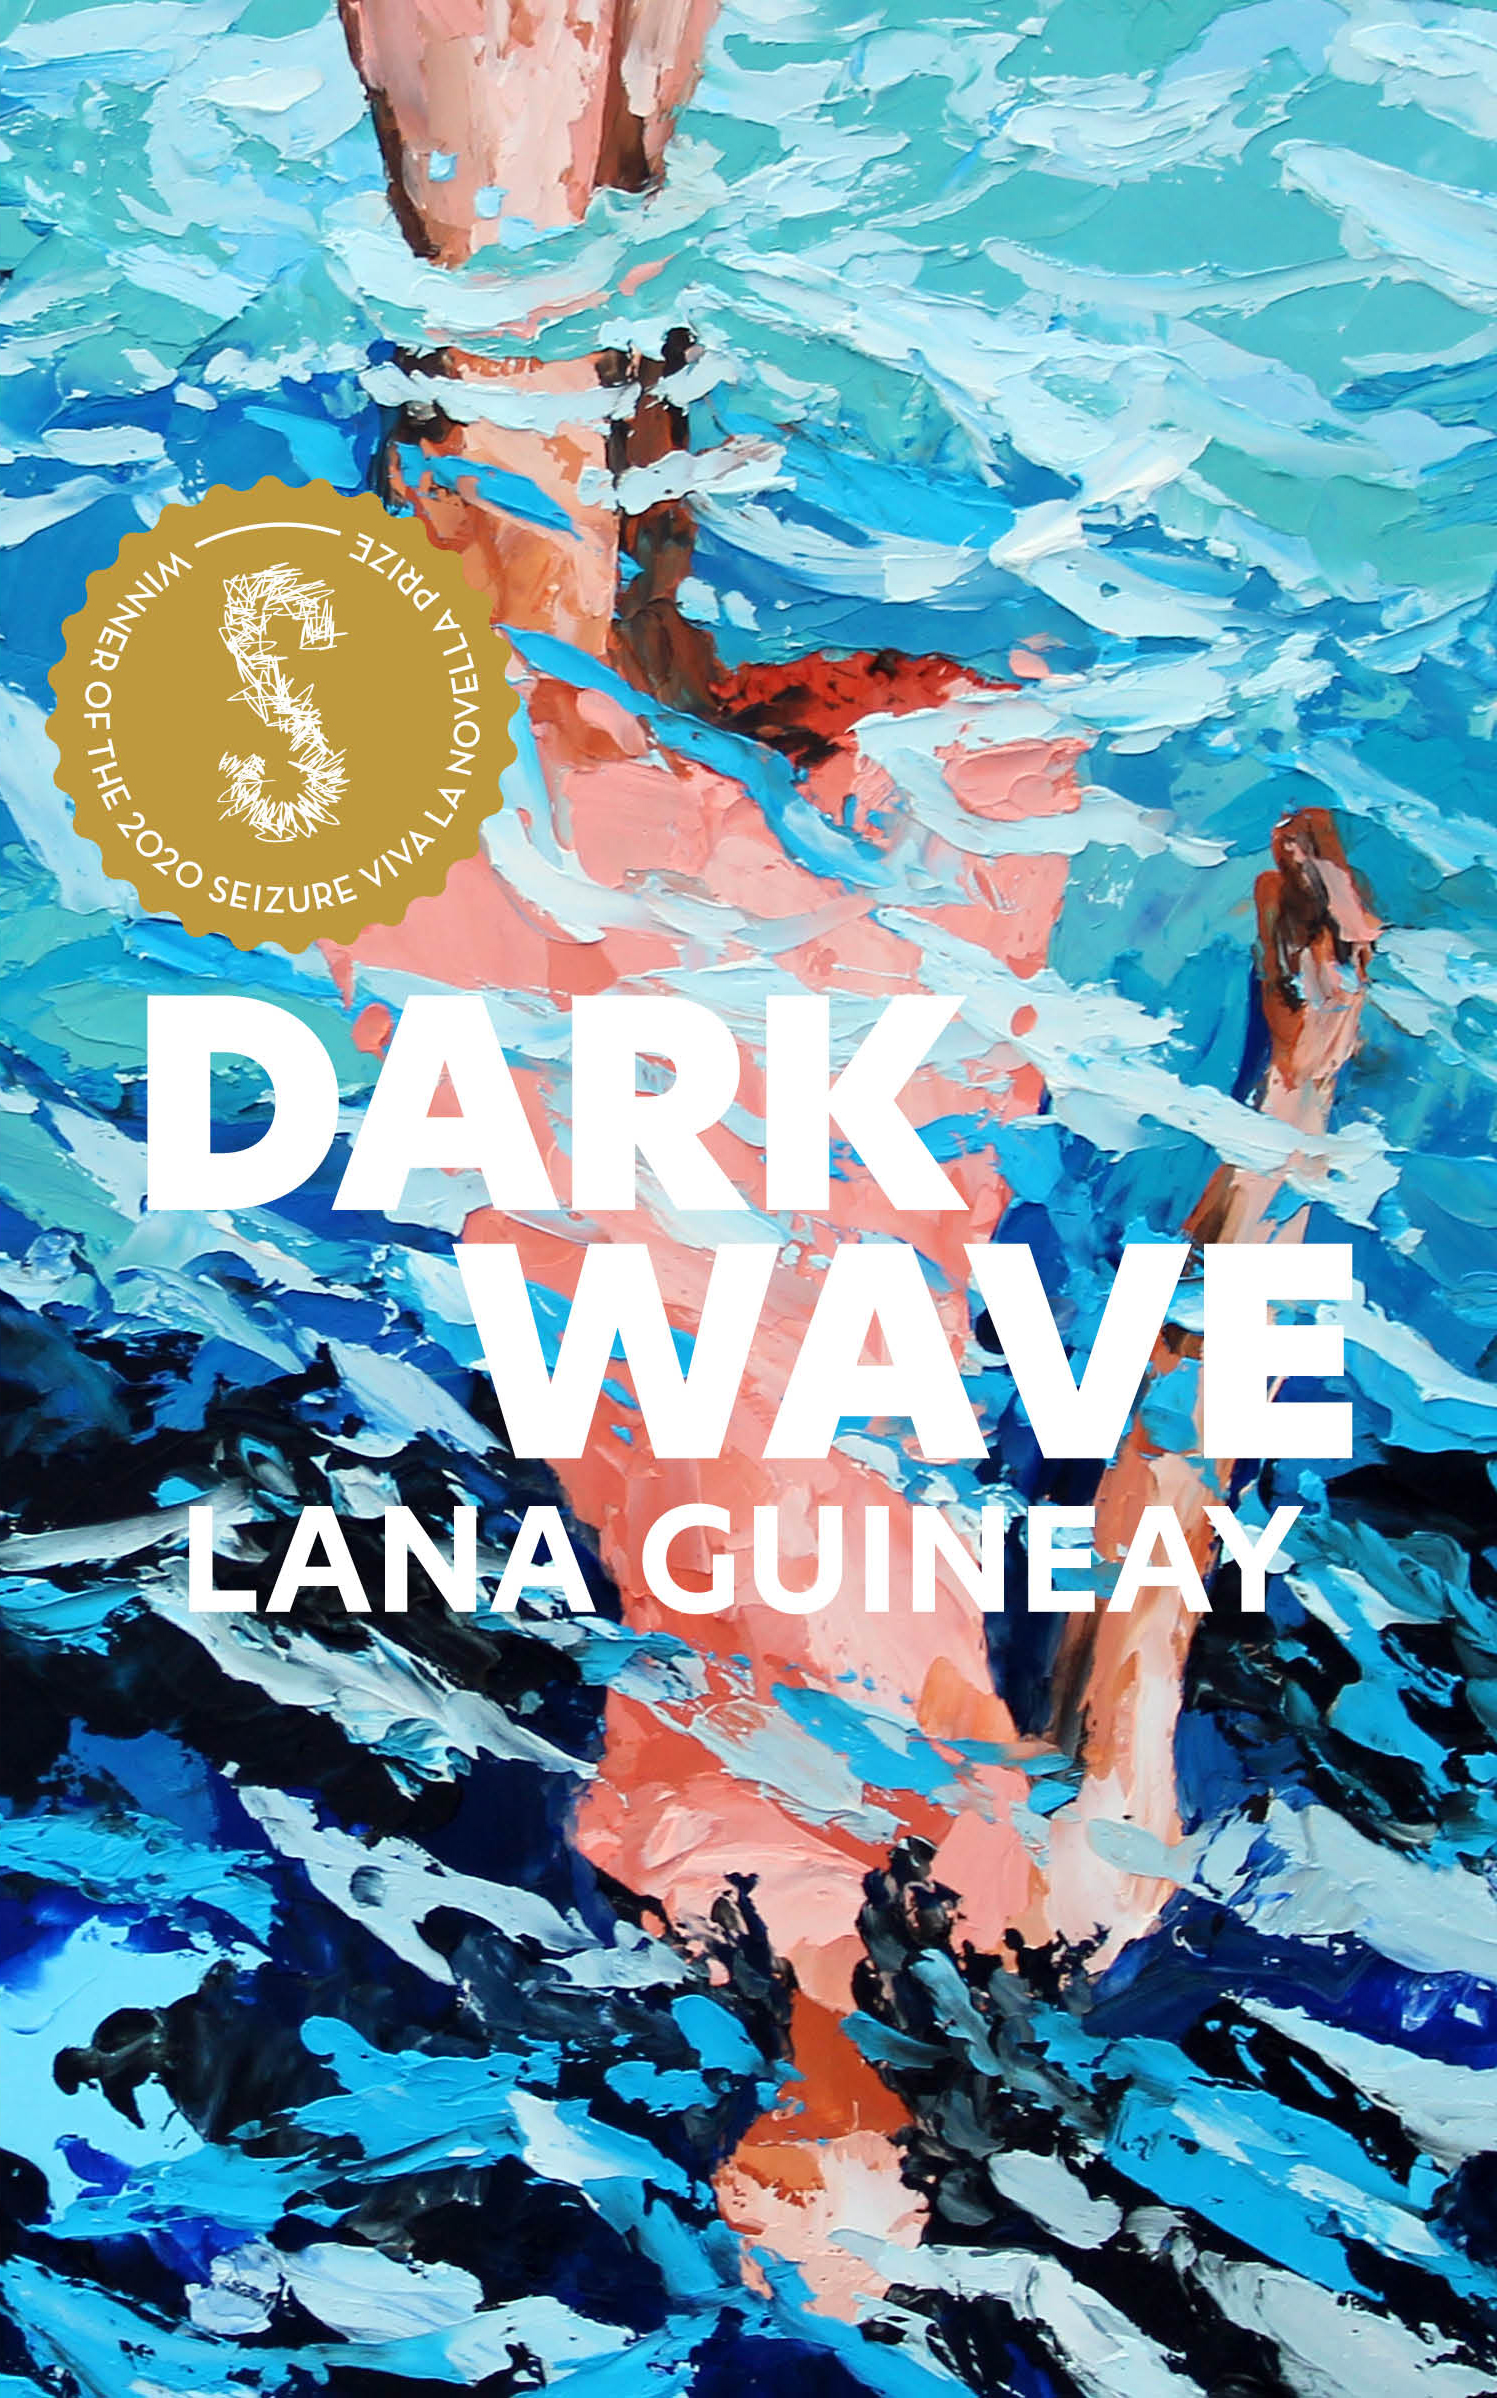 Cover of Dark Wave, featuring an illustration of a body reflected in water